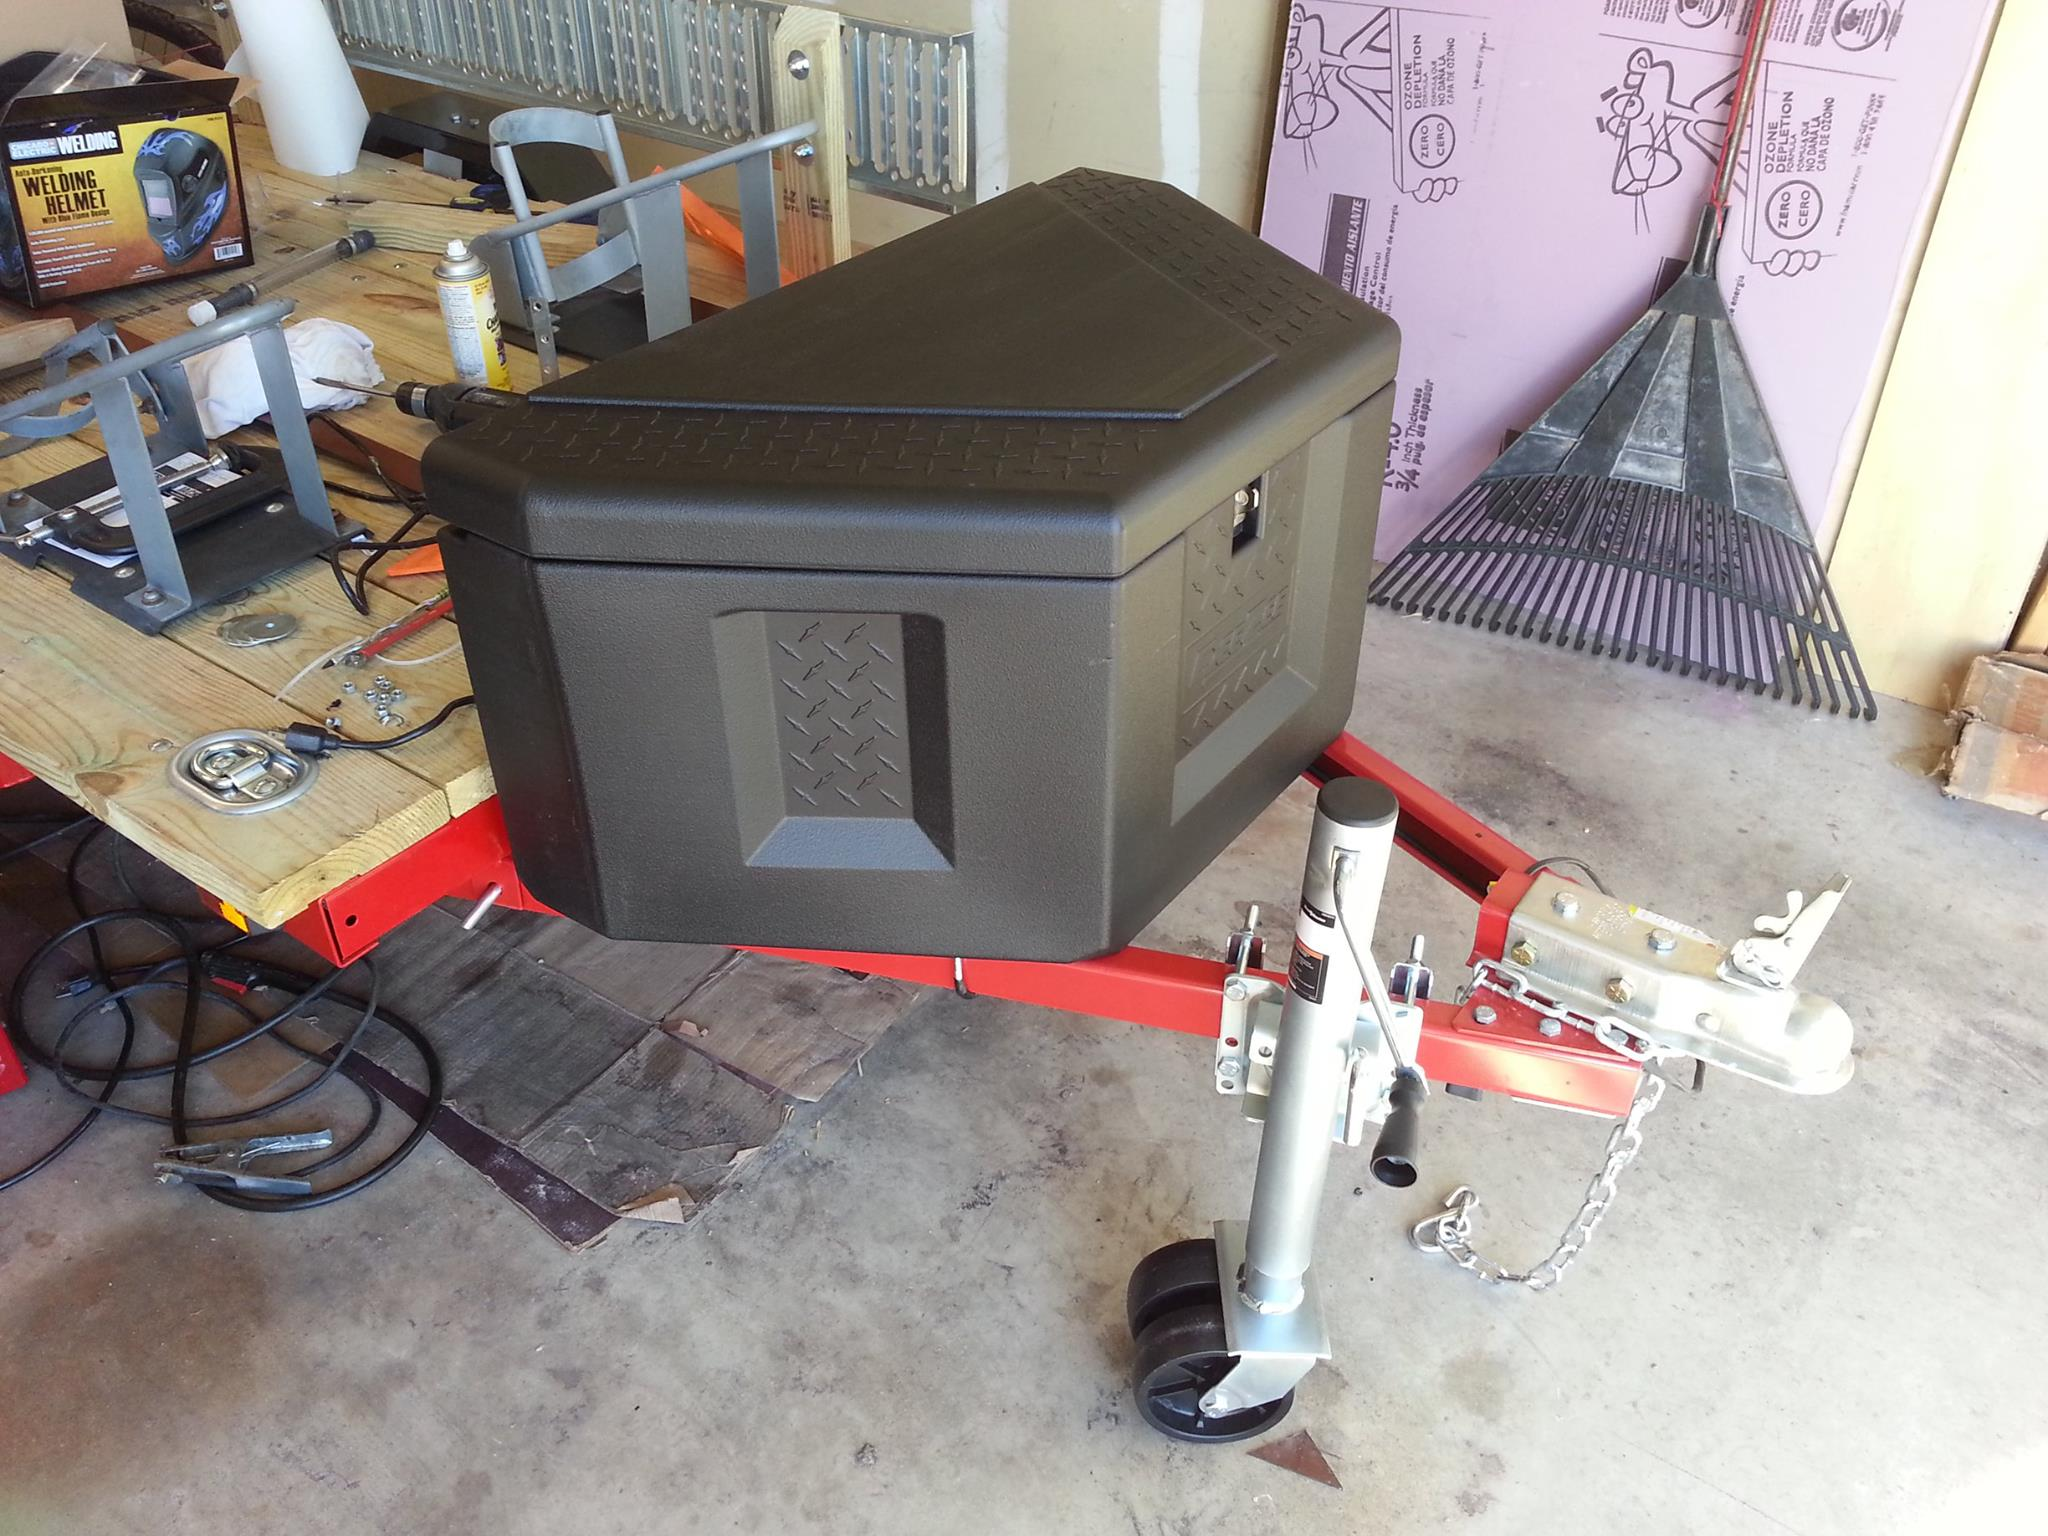 My harbor freight 4x8 utility trailer build out zx6r forum publicscrutiny Choice Image